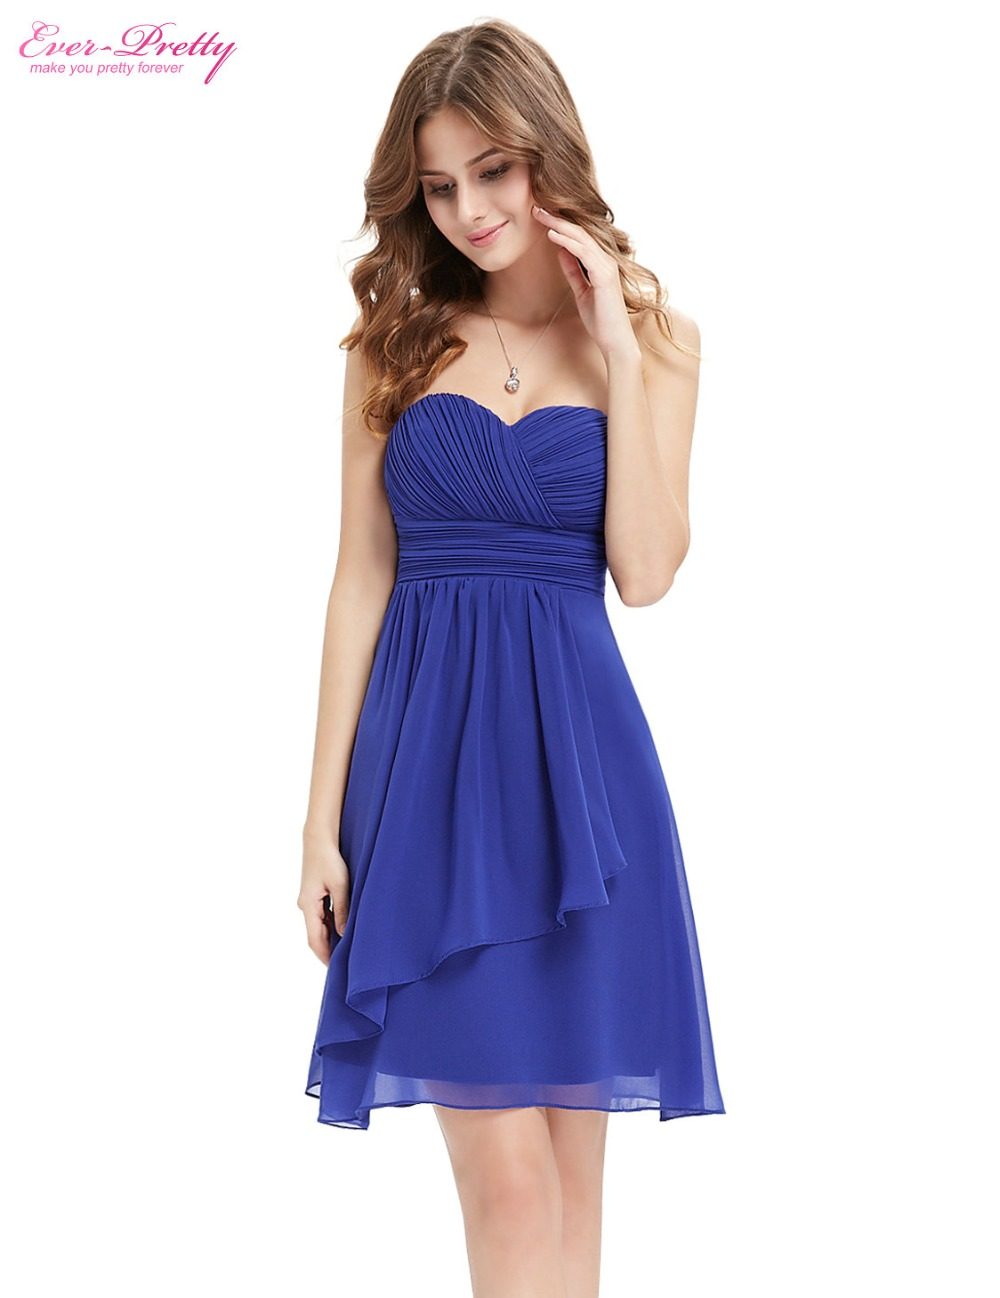 Sweetheart neckline bridesmaid dresses reviews online shopping clearance sale bridesmaid dresses ever pretty he03540sb wedding sweetheart neckline strapless short vestidos women dresses ombrellifo Image collections